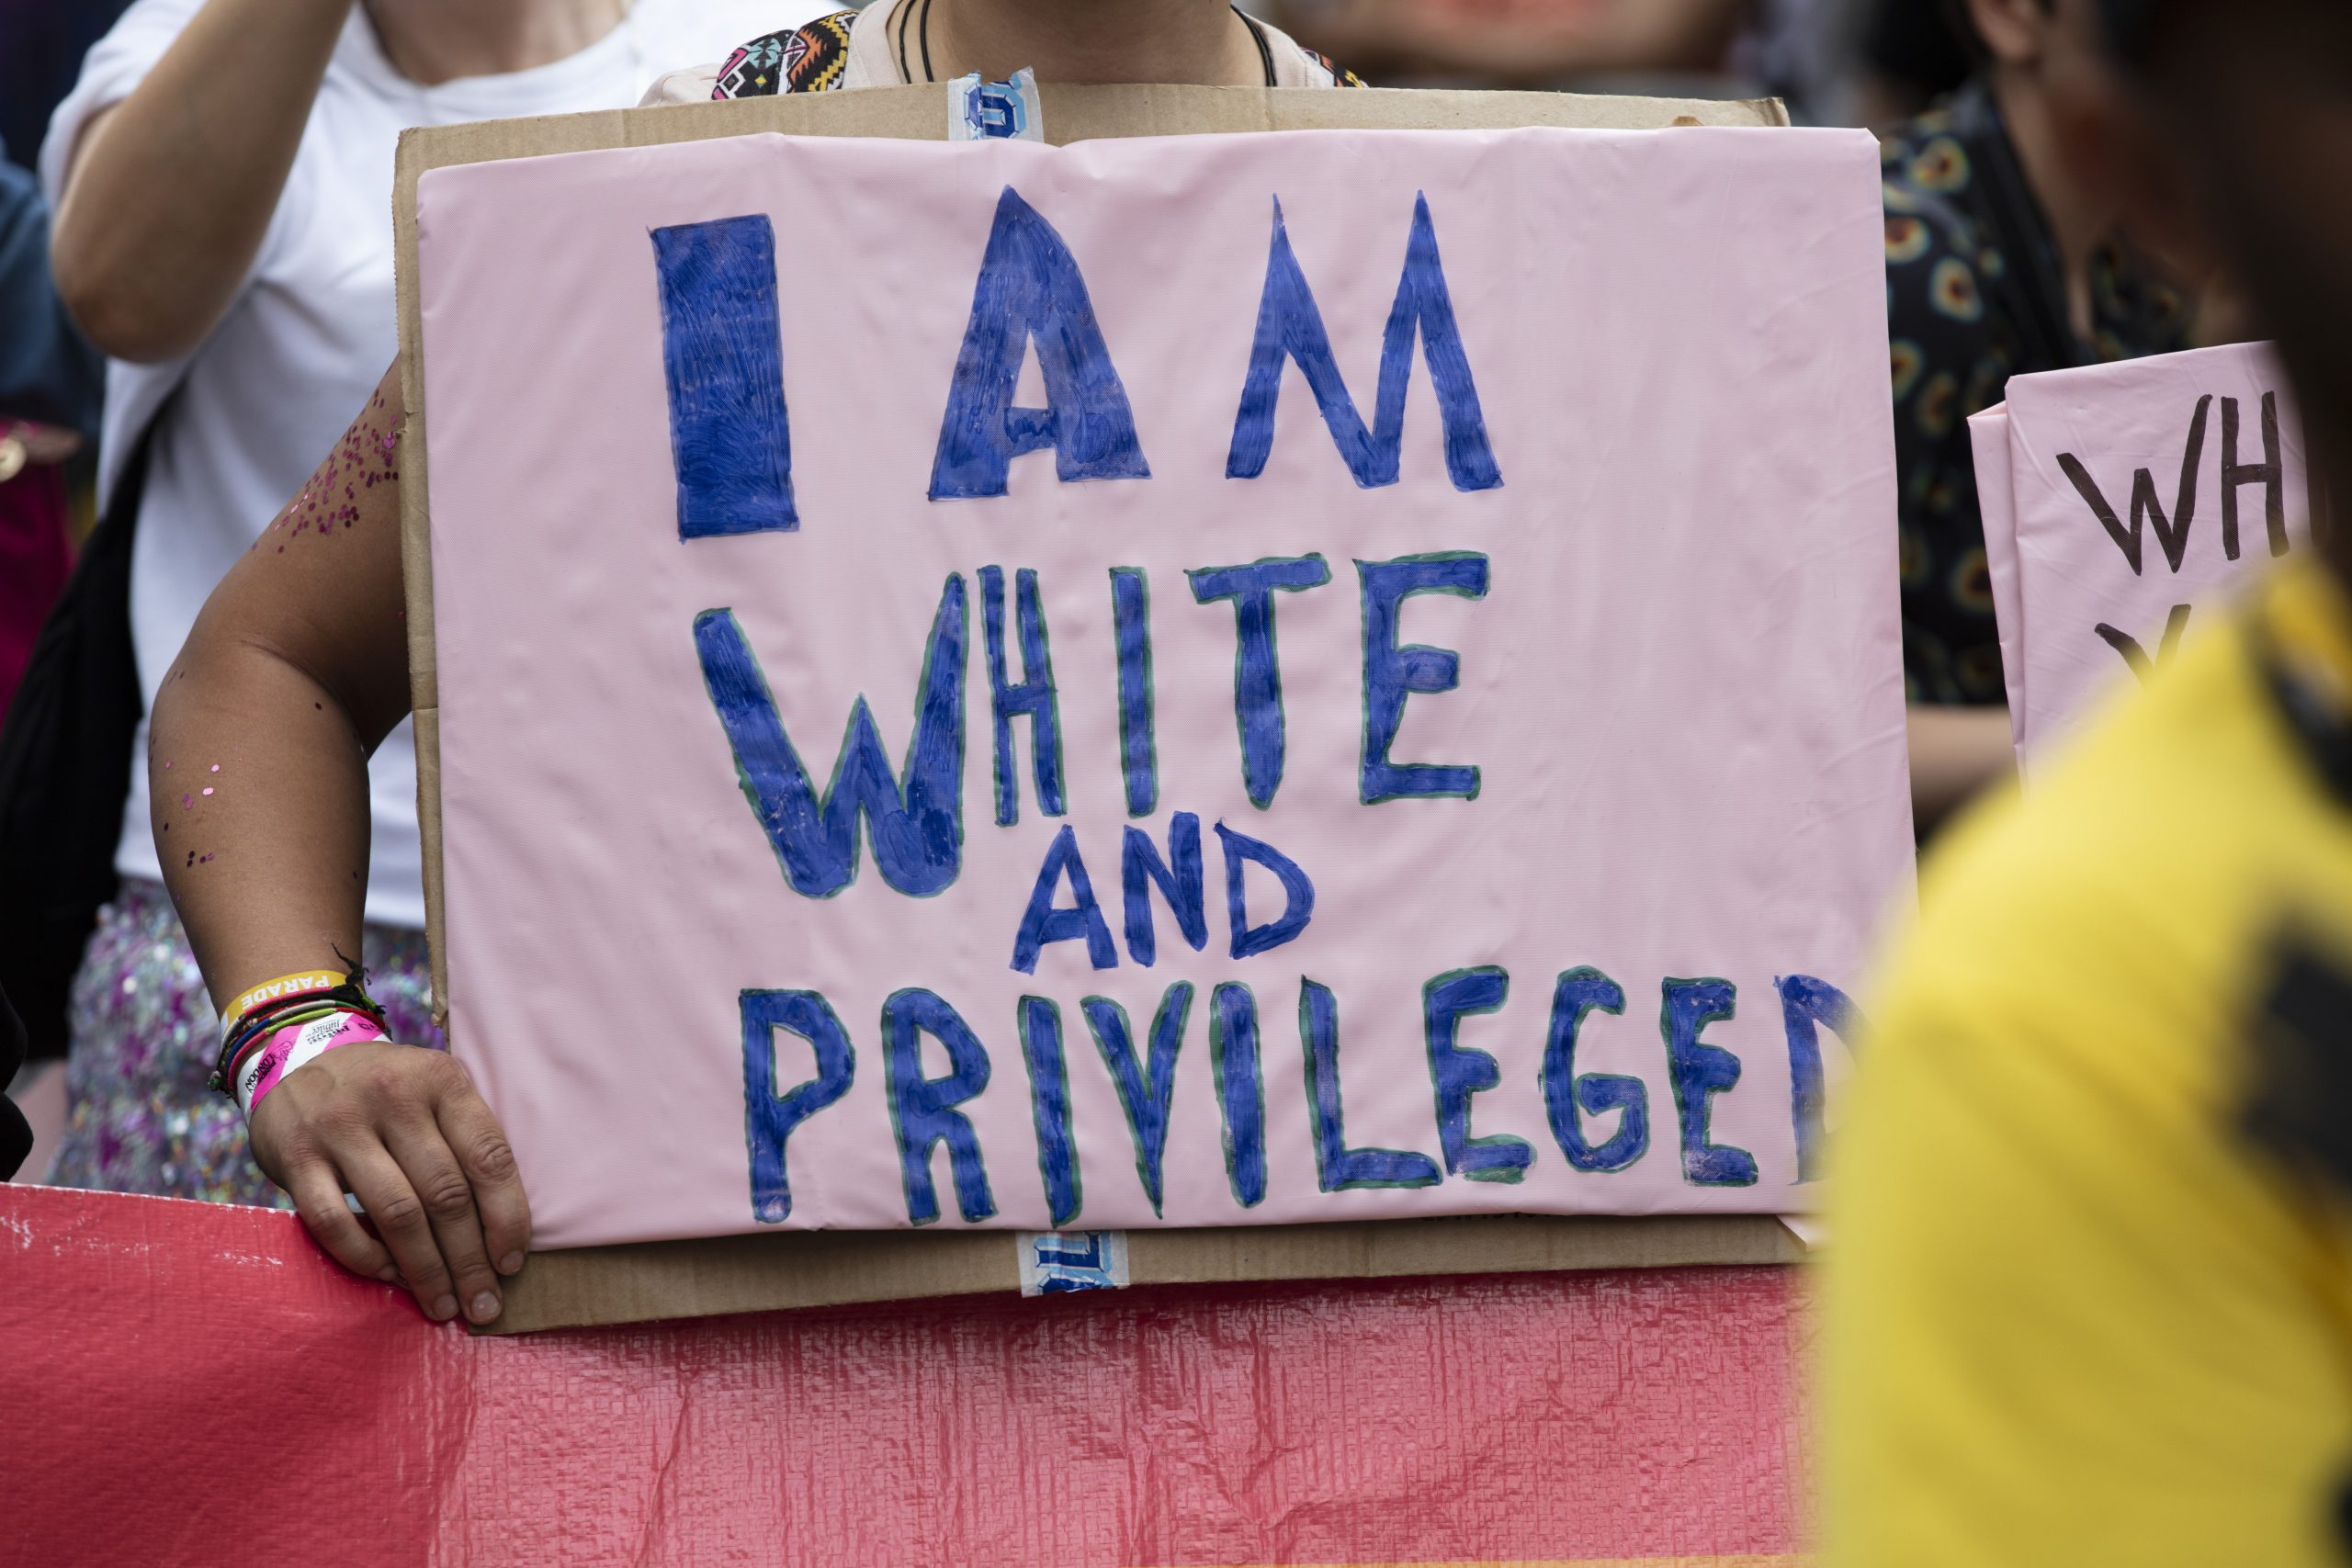 White Privilege Exists: A Privileged White Woman's Perspective